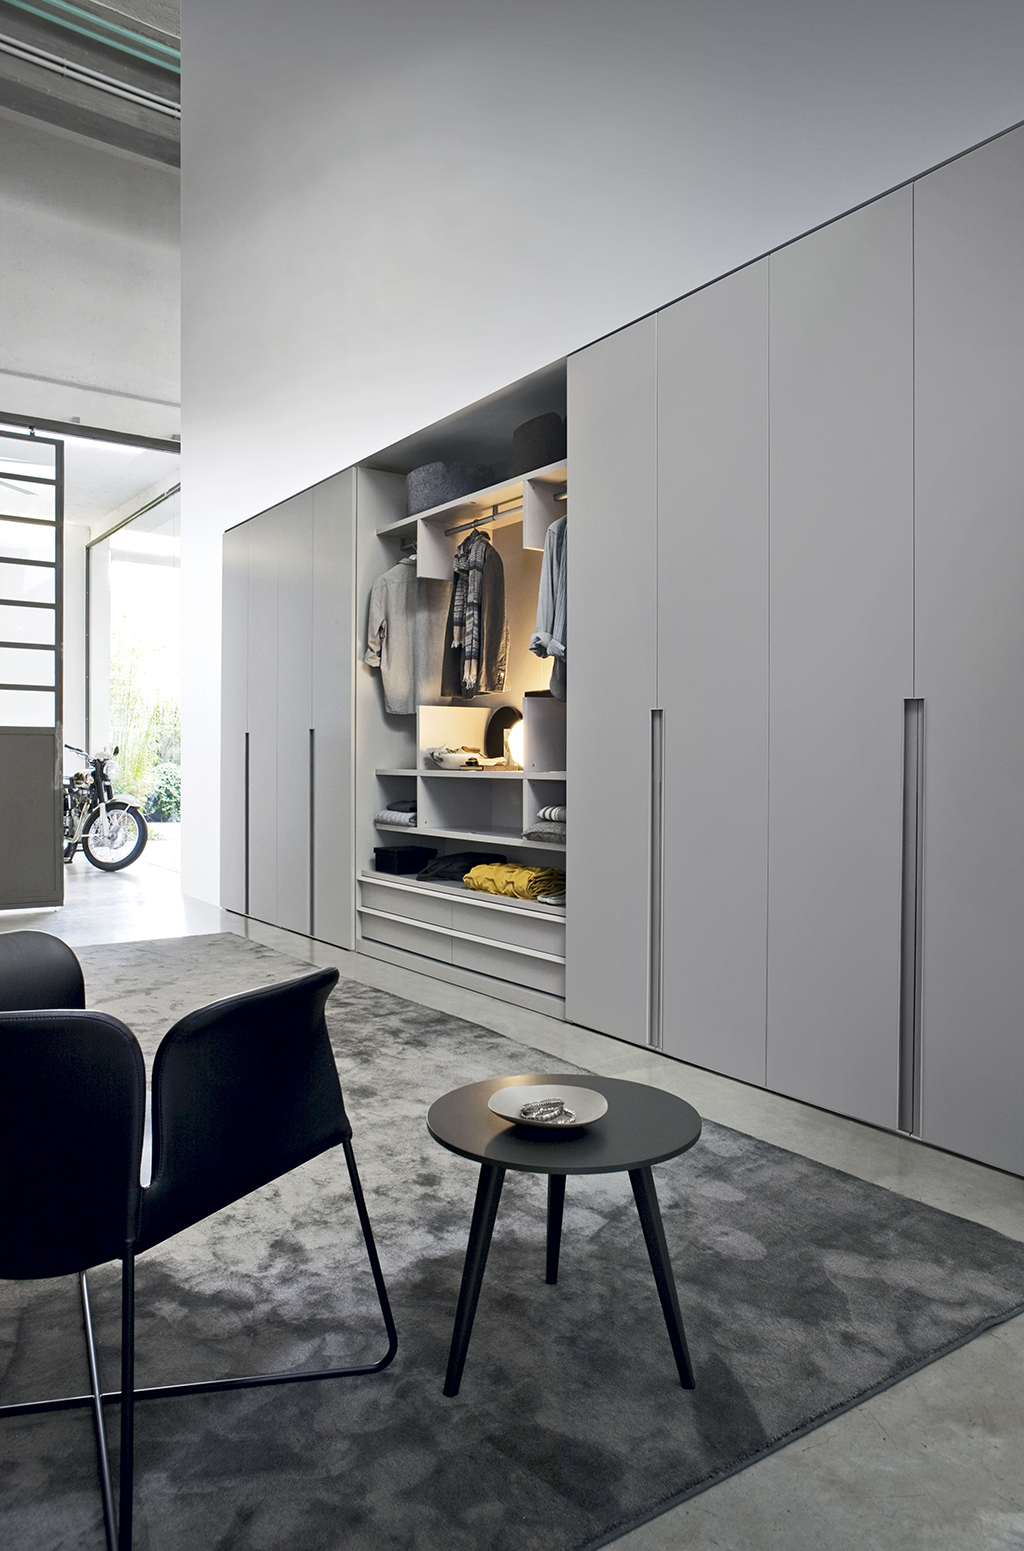 Amore fitted bedroom furniture wardrobes uk lawrence walsh